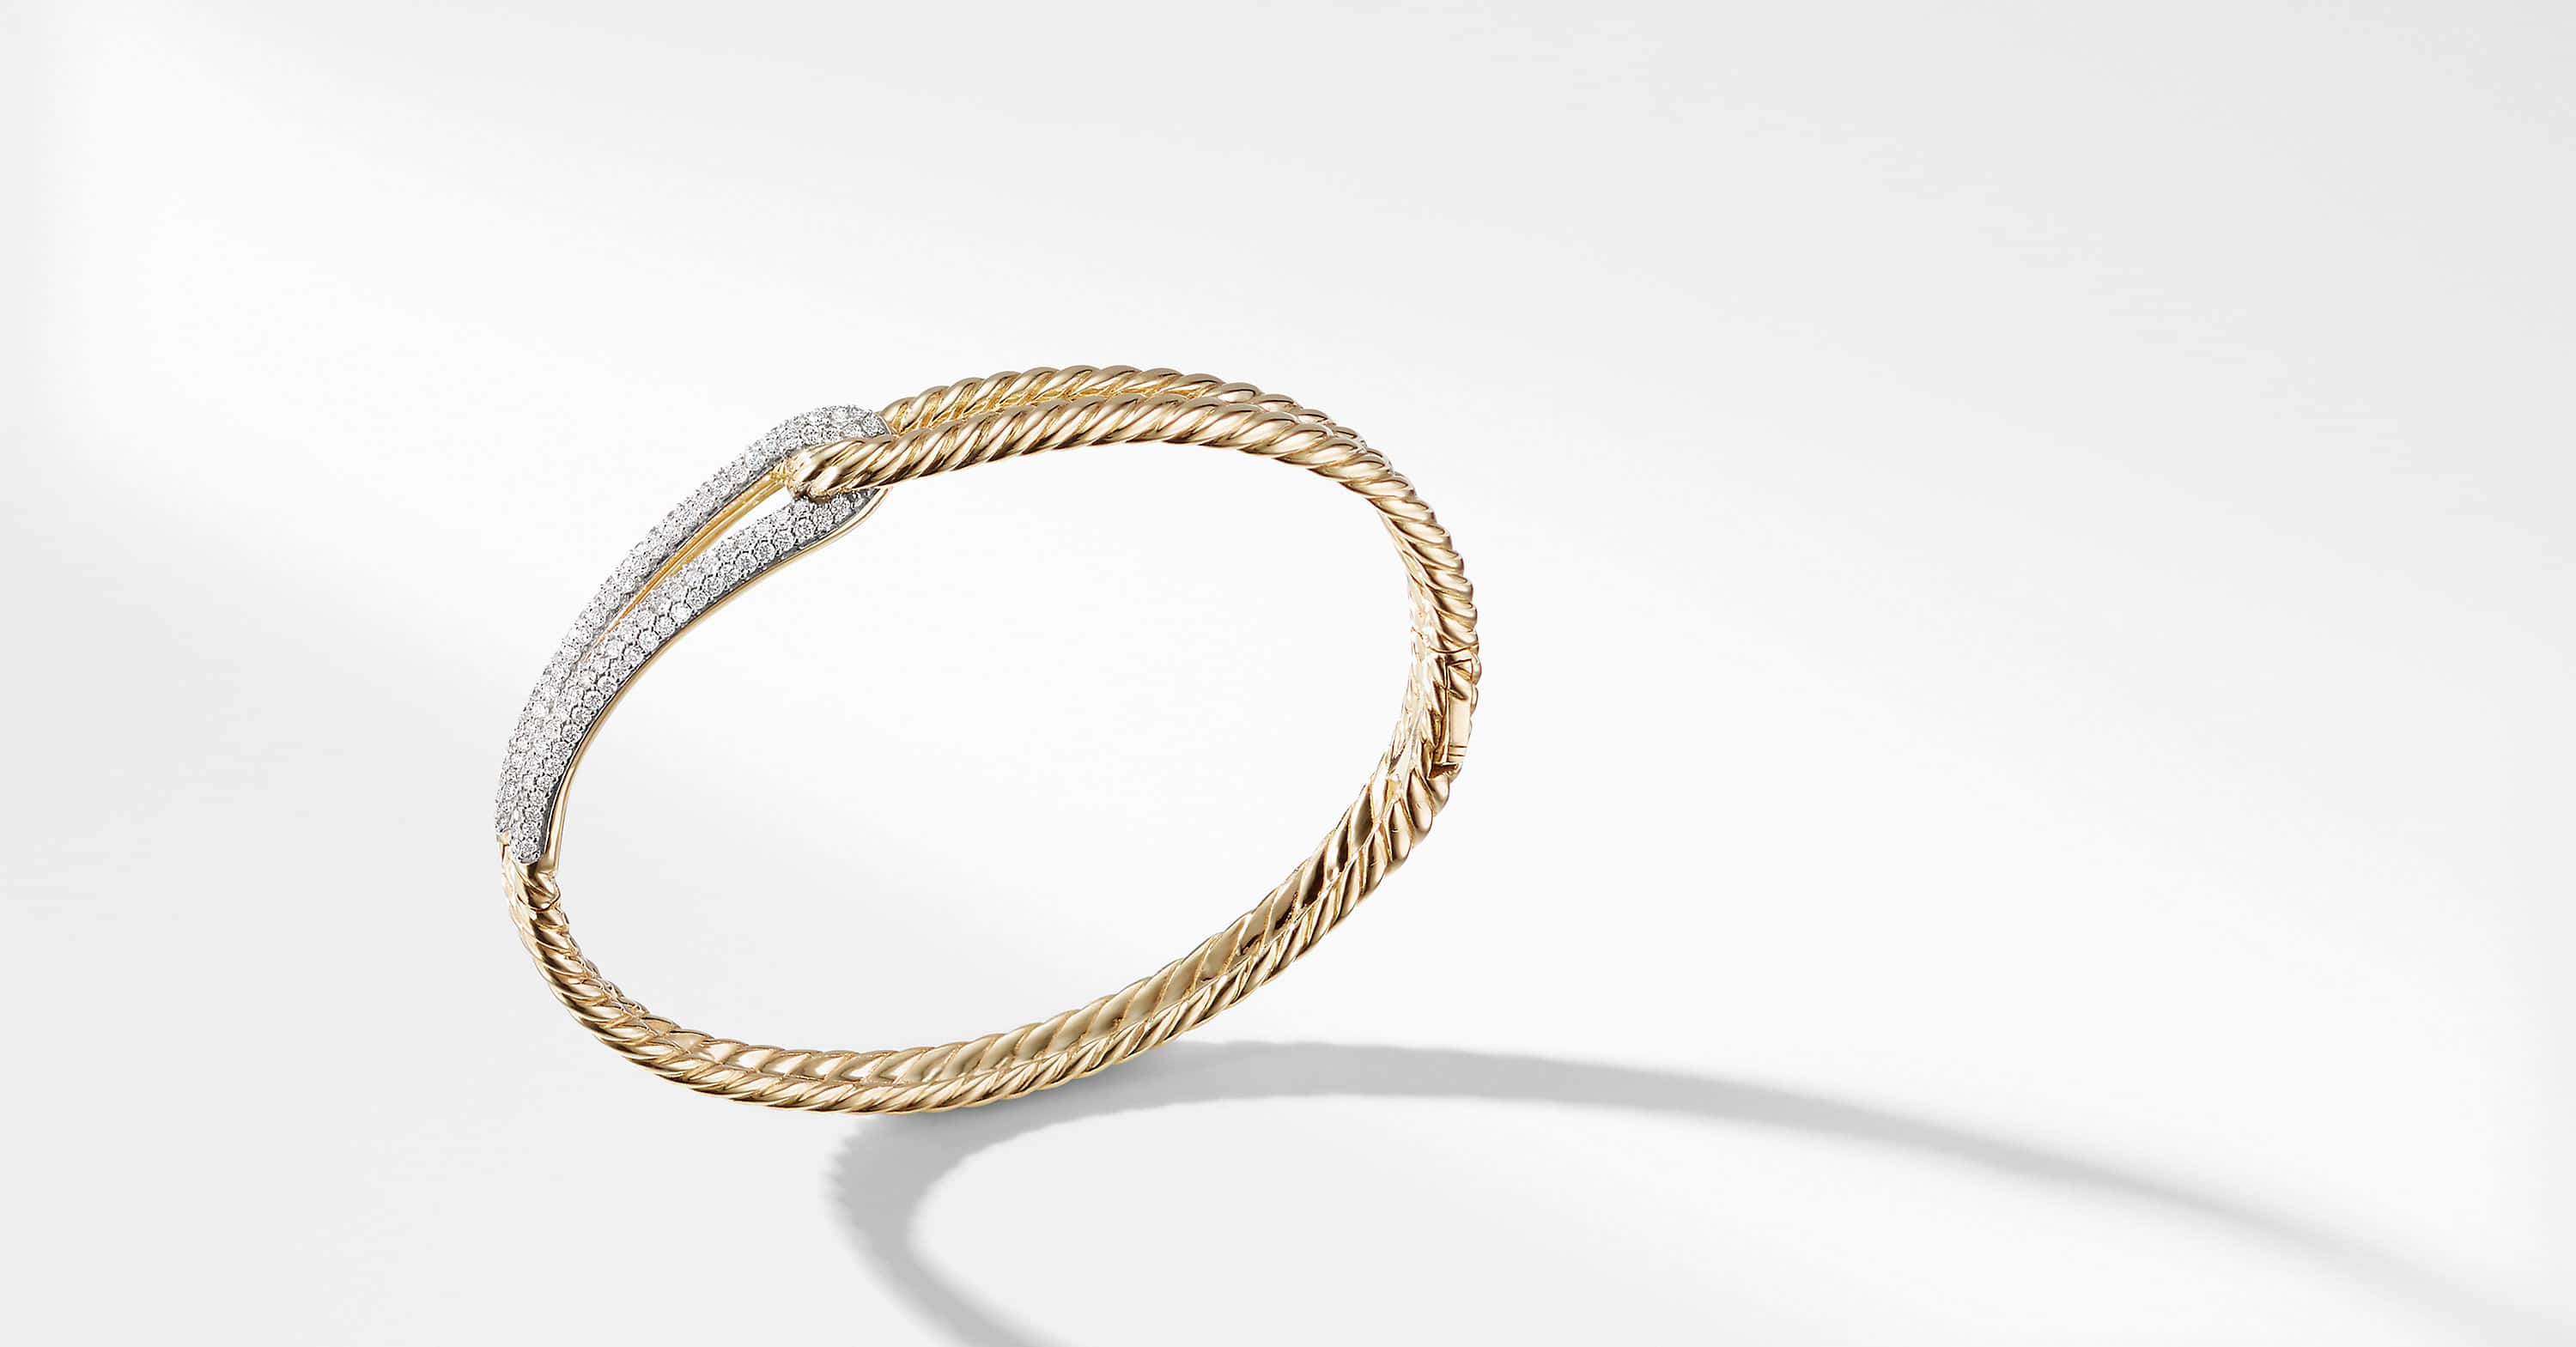 Labyrinth Loop Bracelet with Diamonds in 18K Gold, 8mm